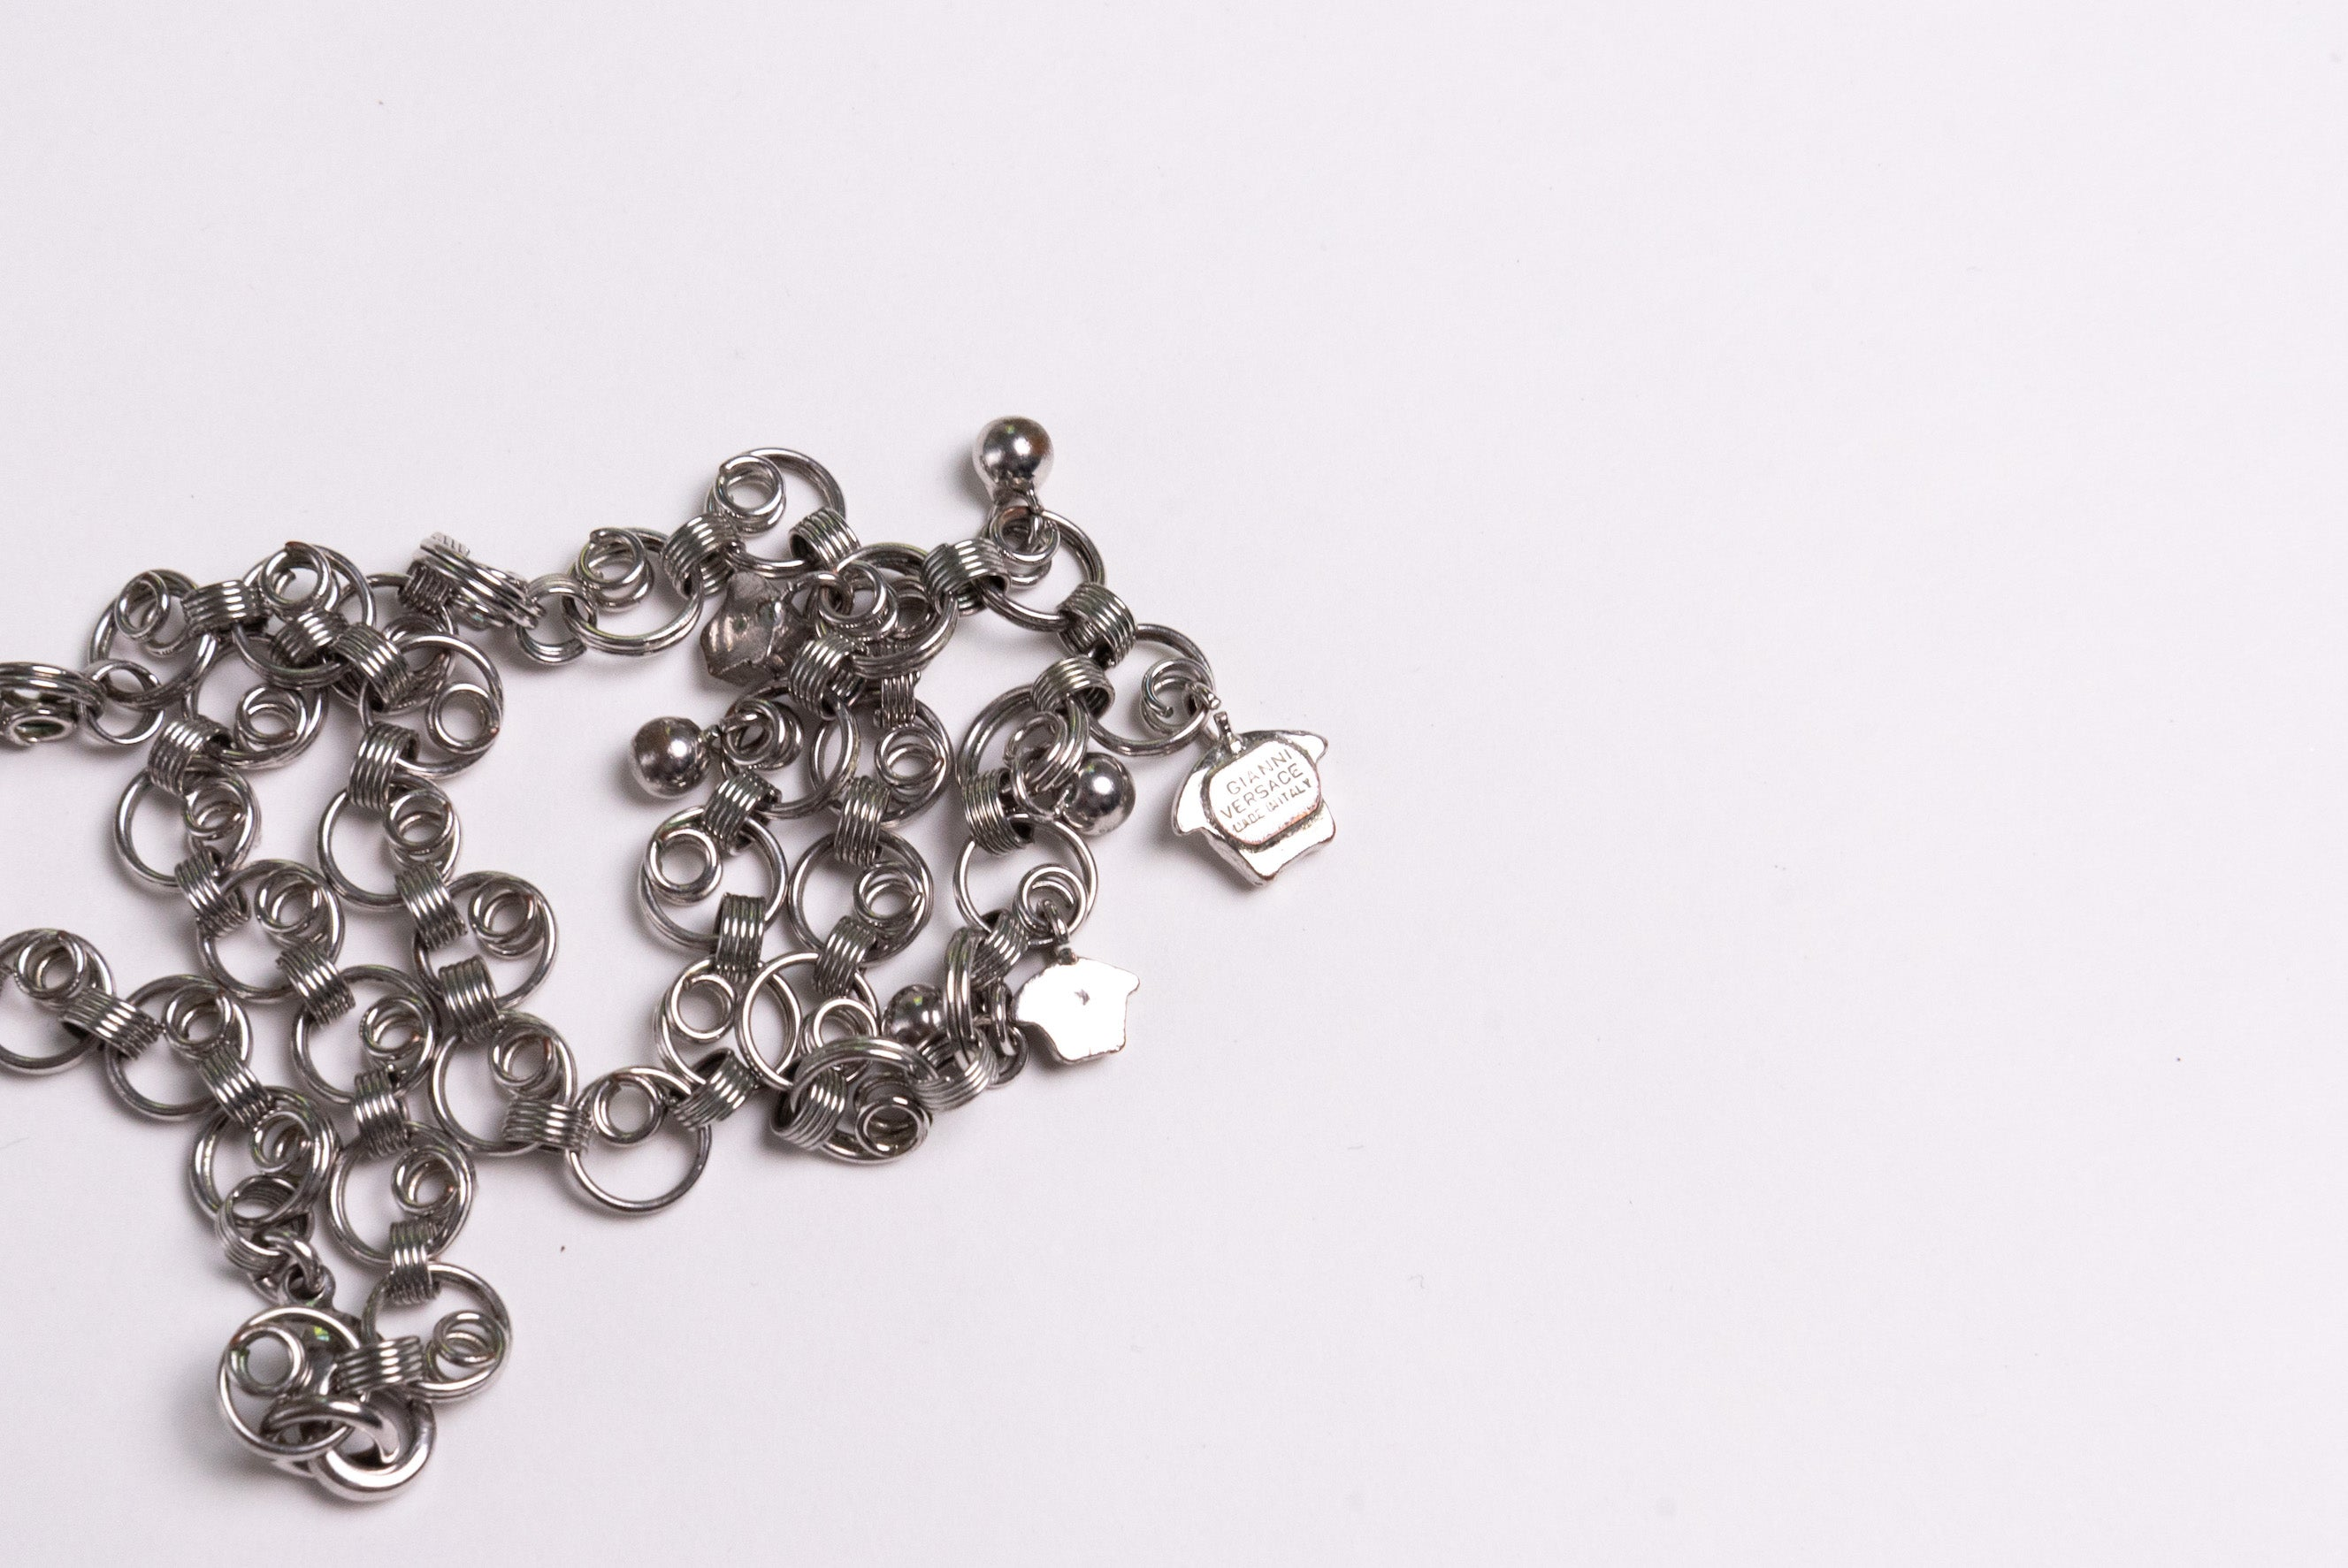 Gianni Versace <br> 1990's silver choker necklace with dangling Medusa heads